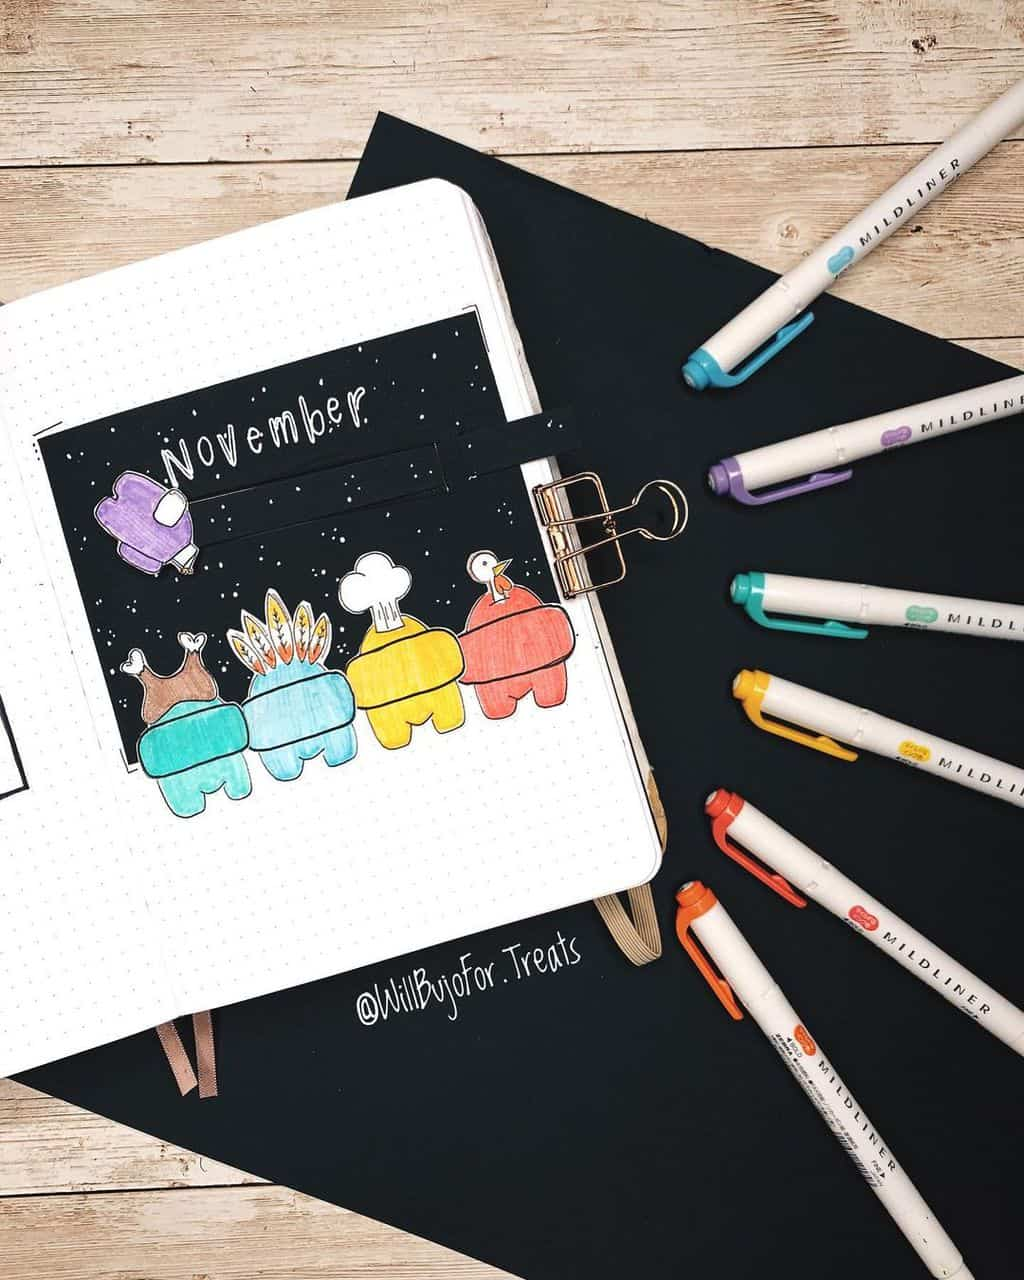 Among Us Themed Bullet Journal Inspirations, cover page by @willbujofor.treats | Masha Plans